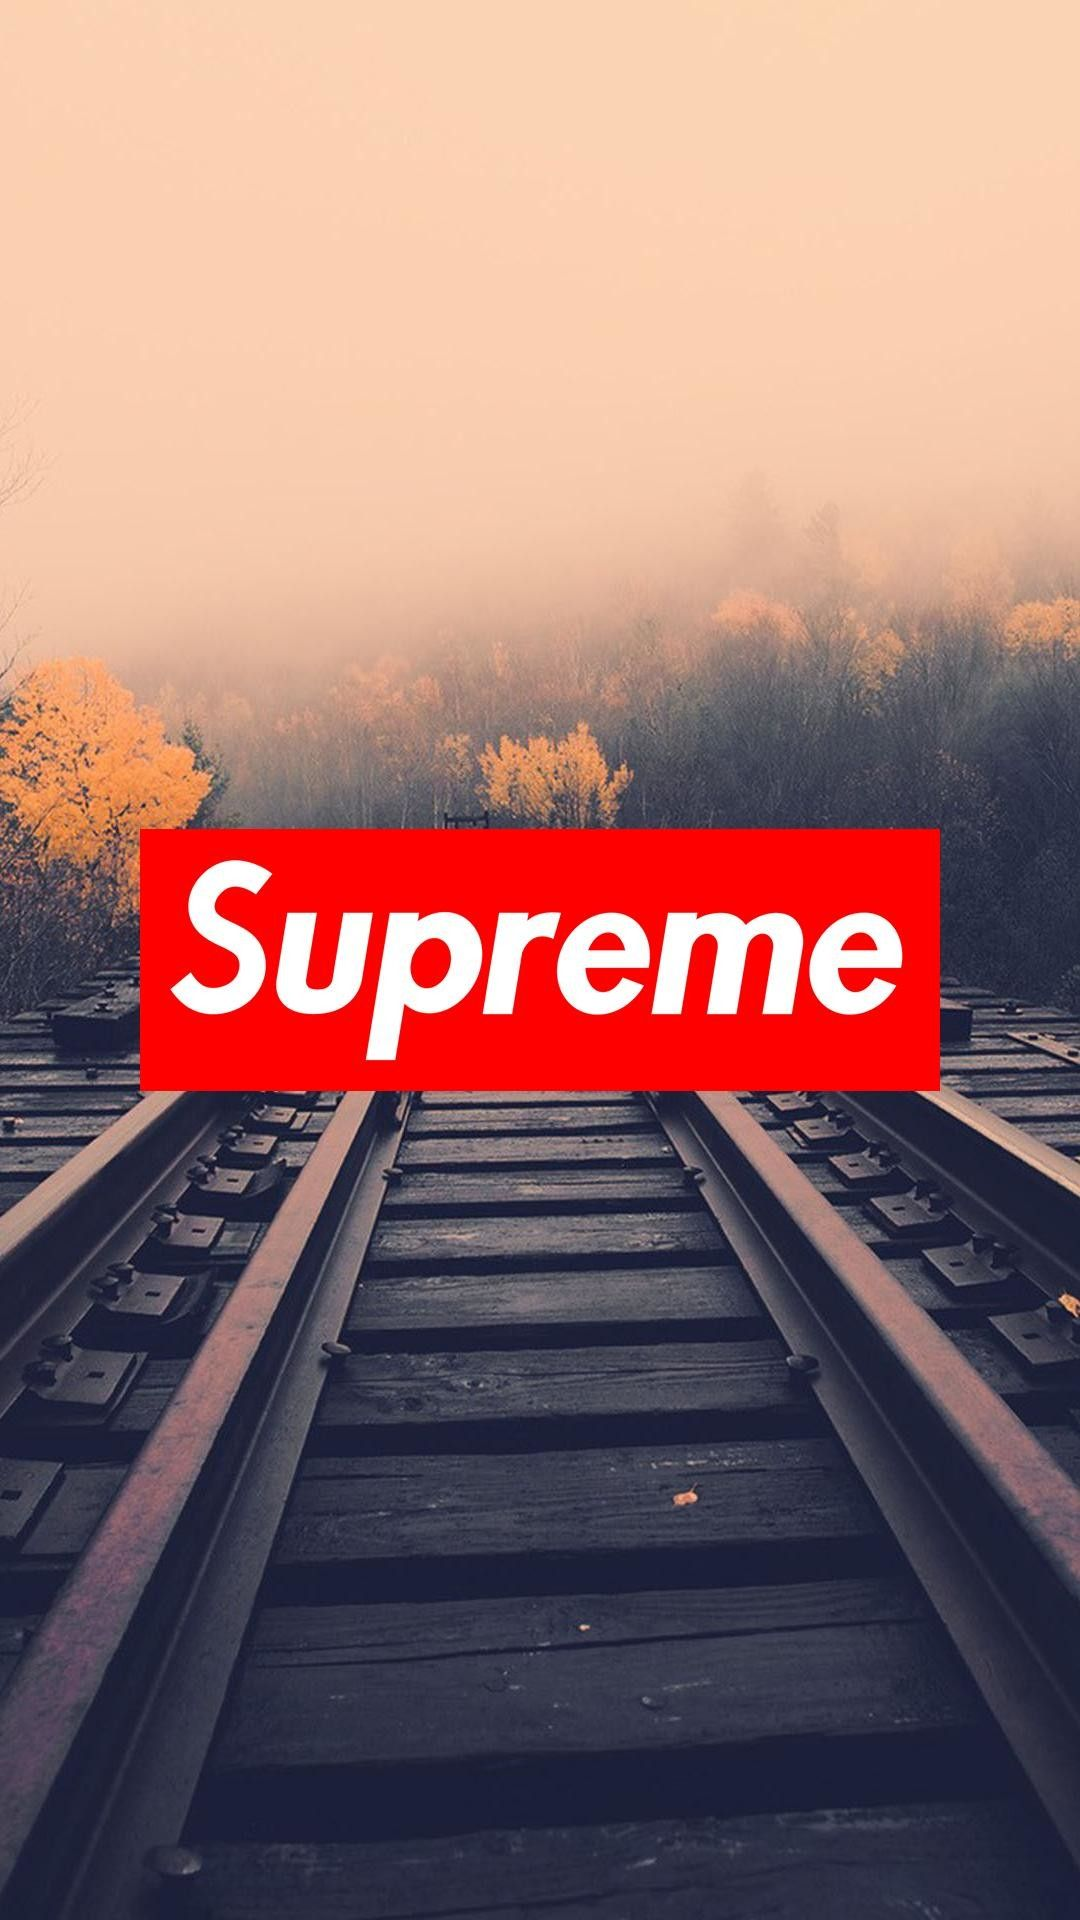 Supreme iPhoneX wallpapers Wallpapers Supreme iphone wallpaper 1080x1920